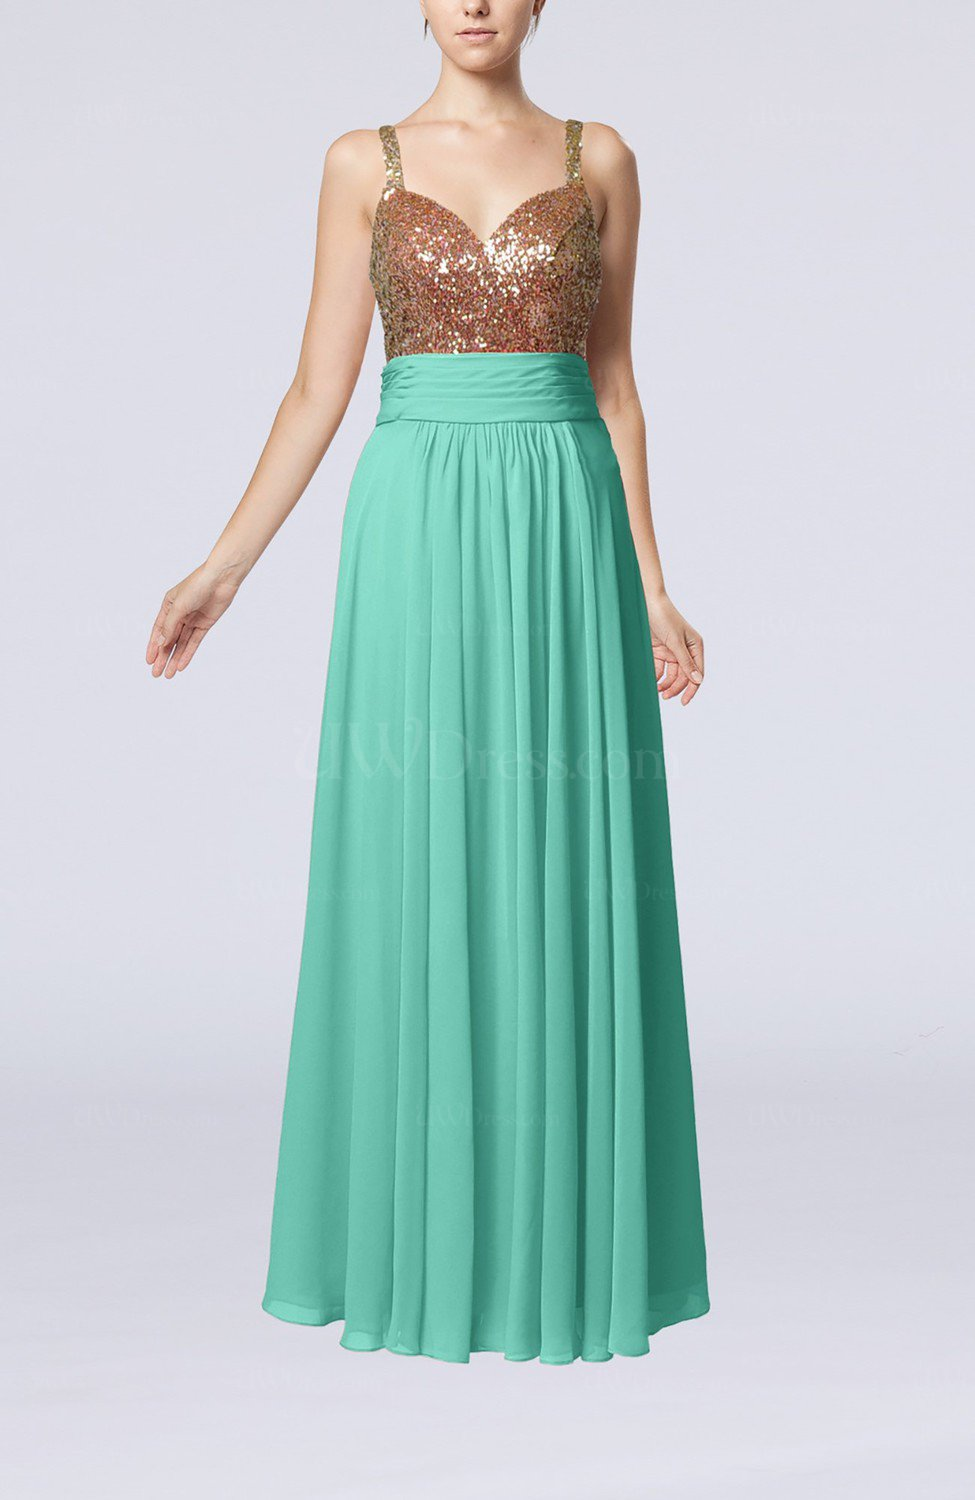 e19a3e0bd13 Mint Green Elegant Empire Sweetheart Sleeveless Backless Chiffon Graduation  Dresses (Style D39780)